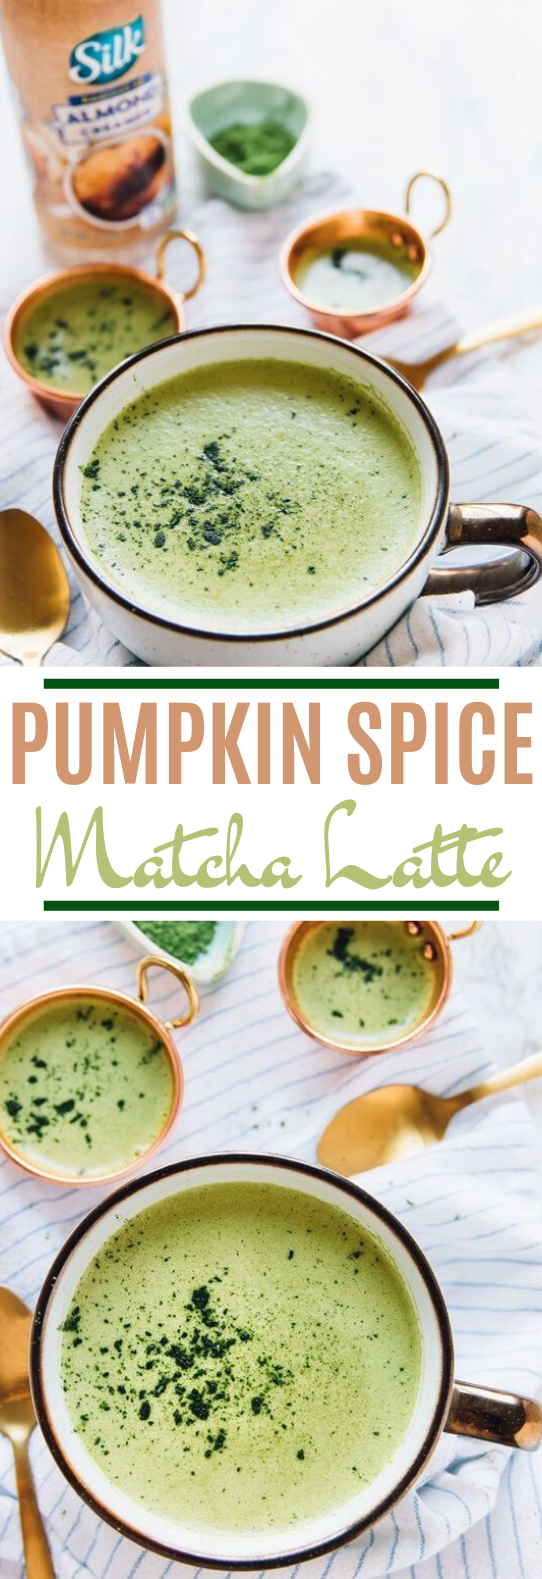 Pumpkin Spice Matcha Latte #drinks #latte #matcha #warm #healthy #pumpkin